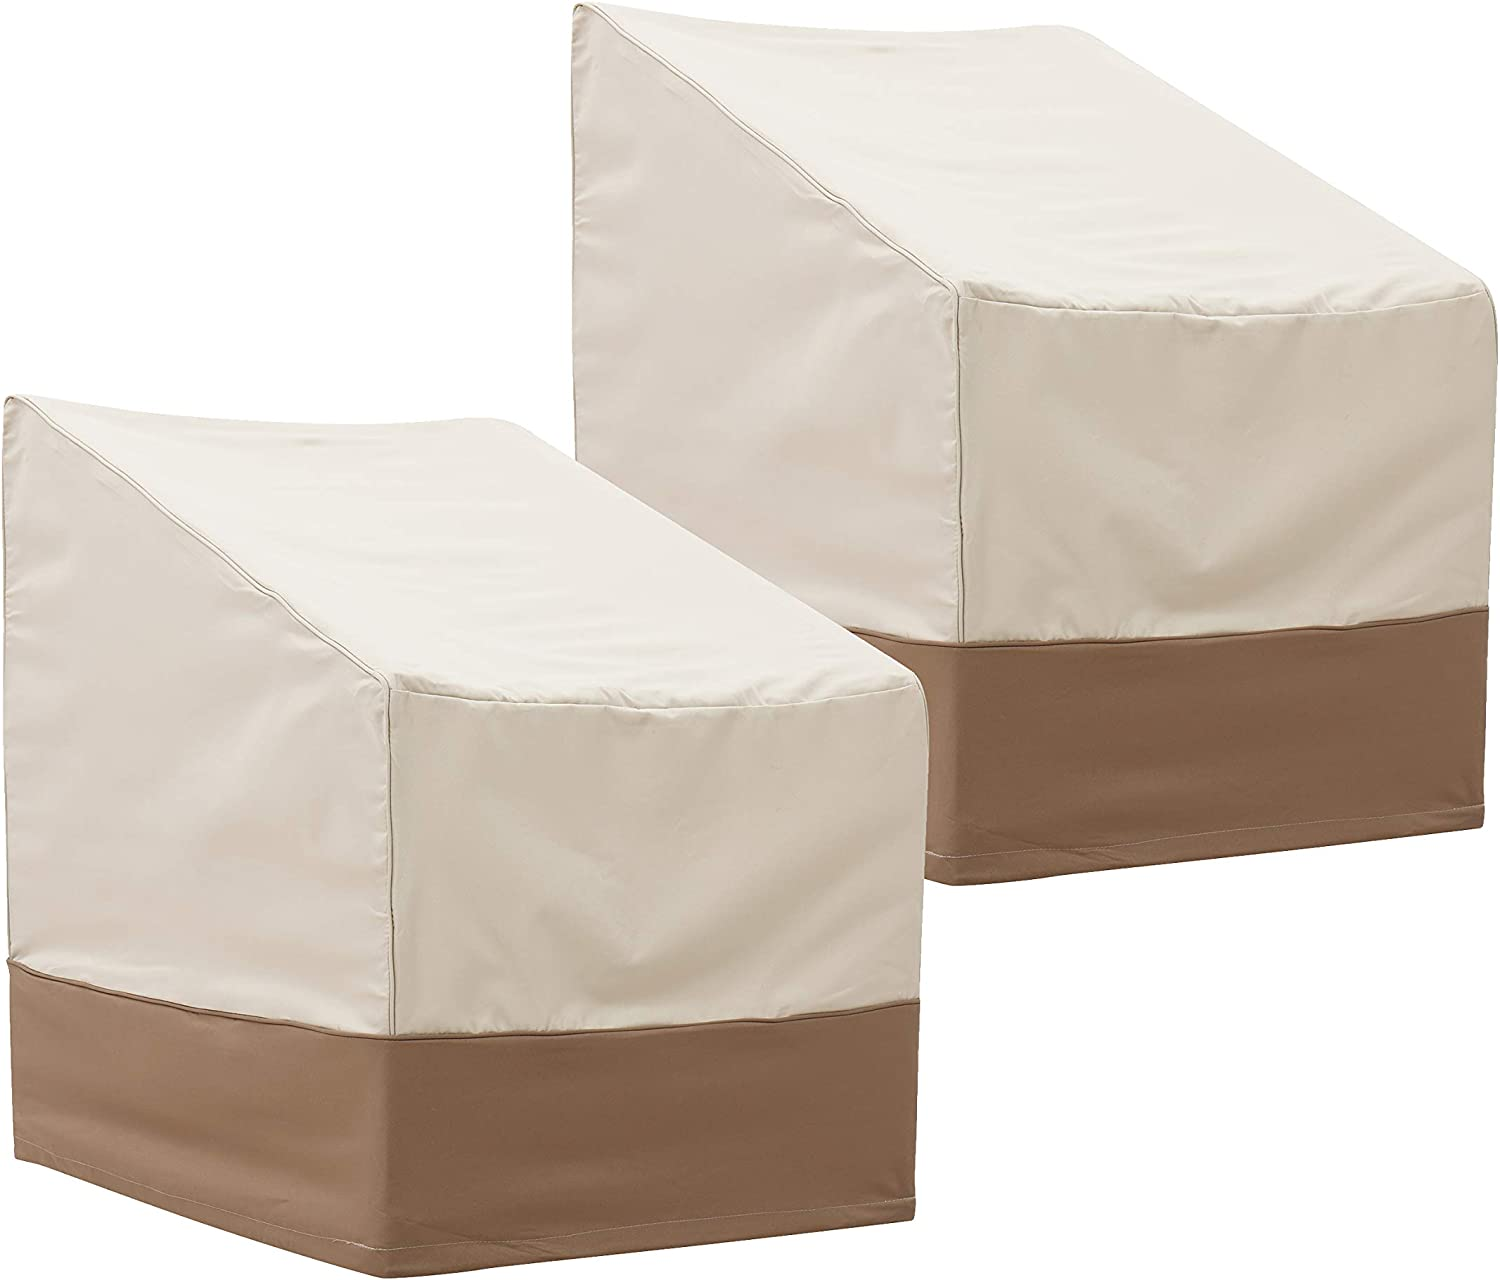 """Finnhomy Outdoor Patio Chair Covers Set of 2 Waterproof Furniture Chair Covers Weather/Fade Resistant 2 Pack Beige 25.5"""" L X 32.5"""" D X 34"""" H"""